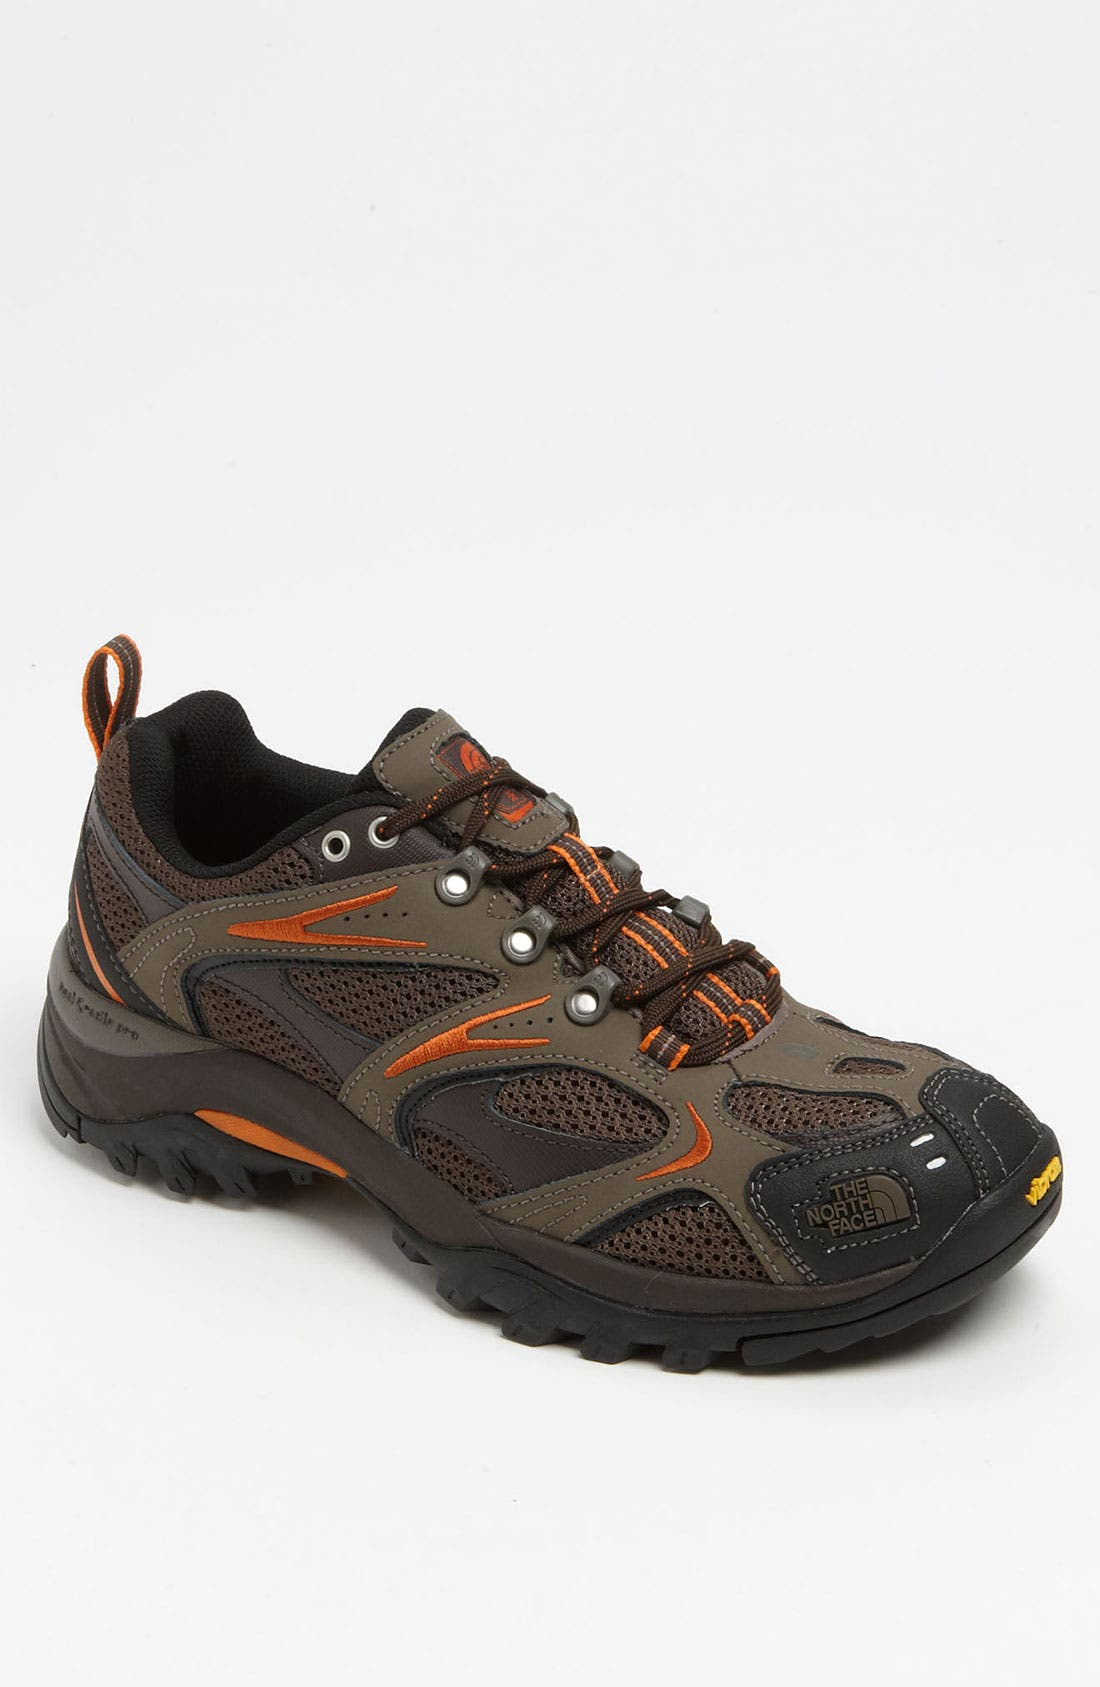 Main Image - The North Face 'Hedgehog III' Hiking Shoe (Men)